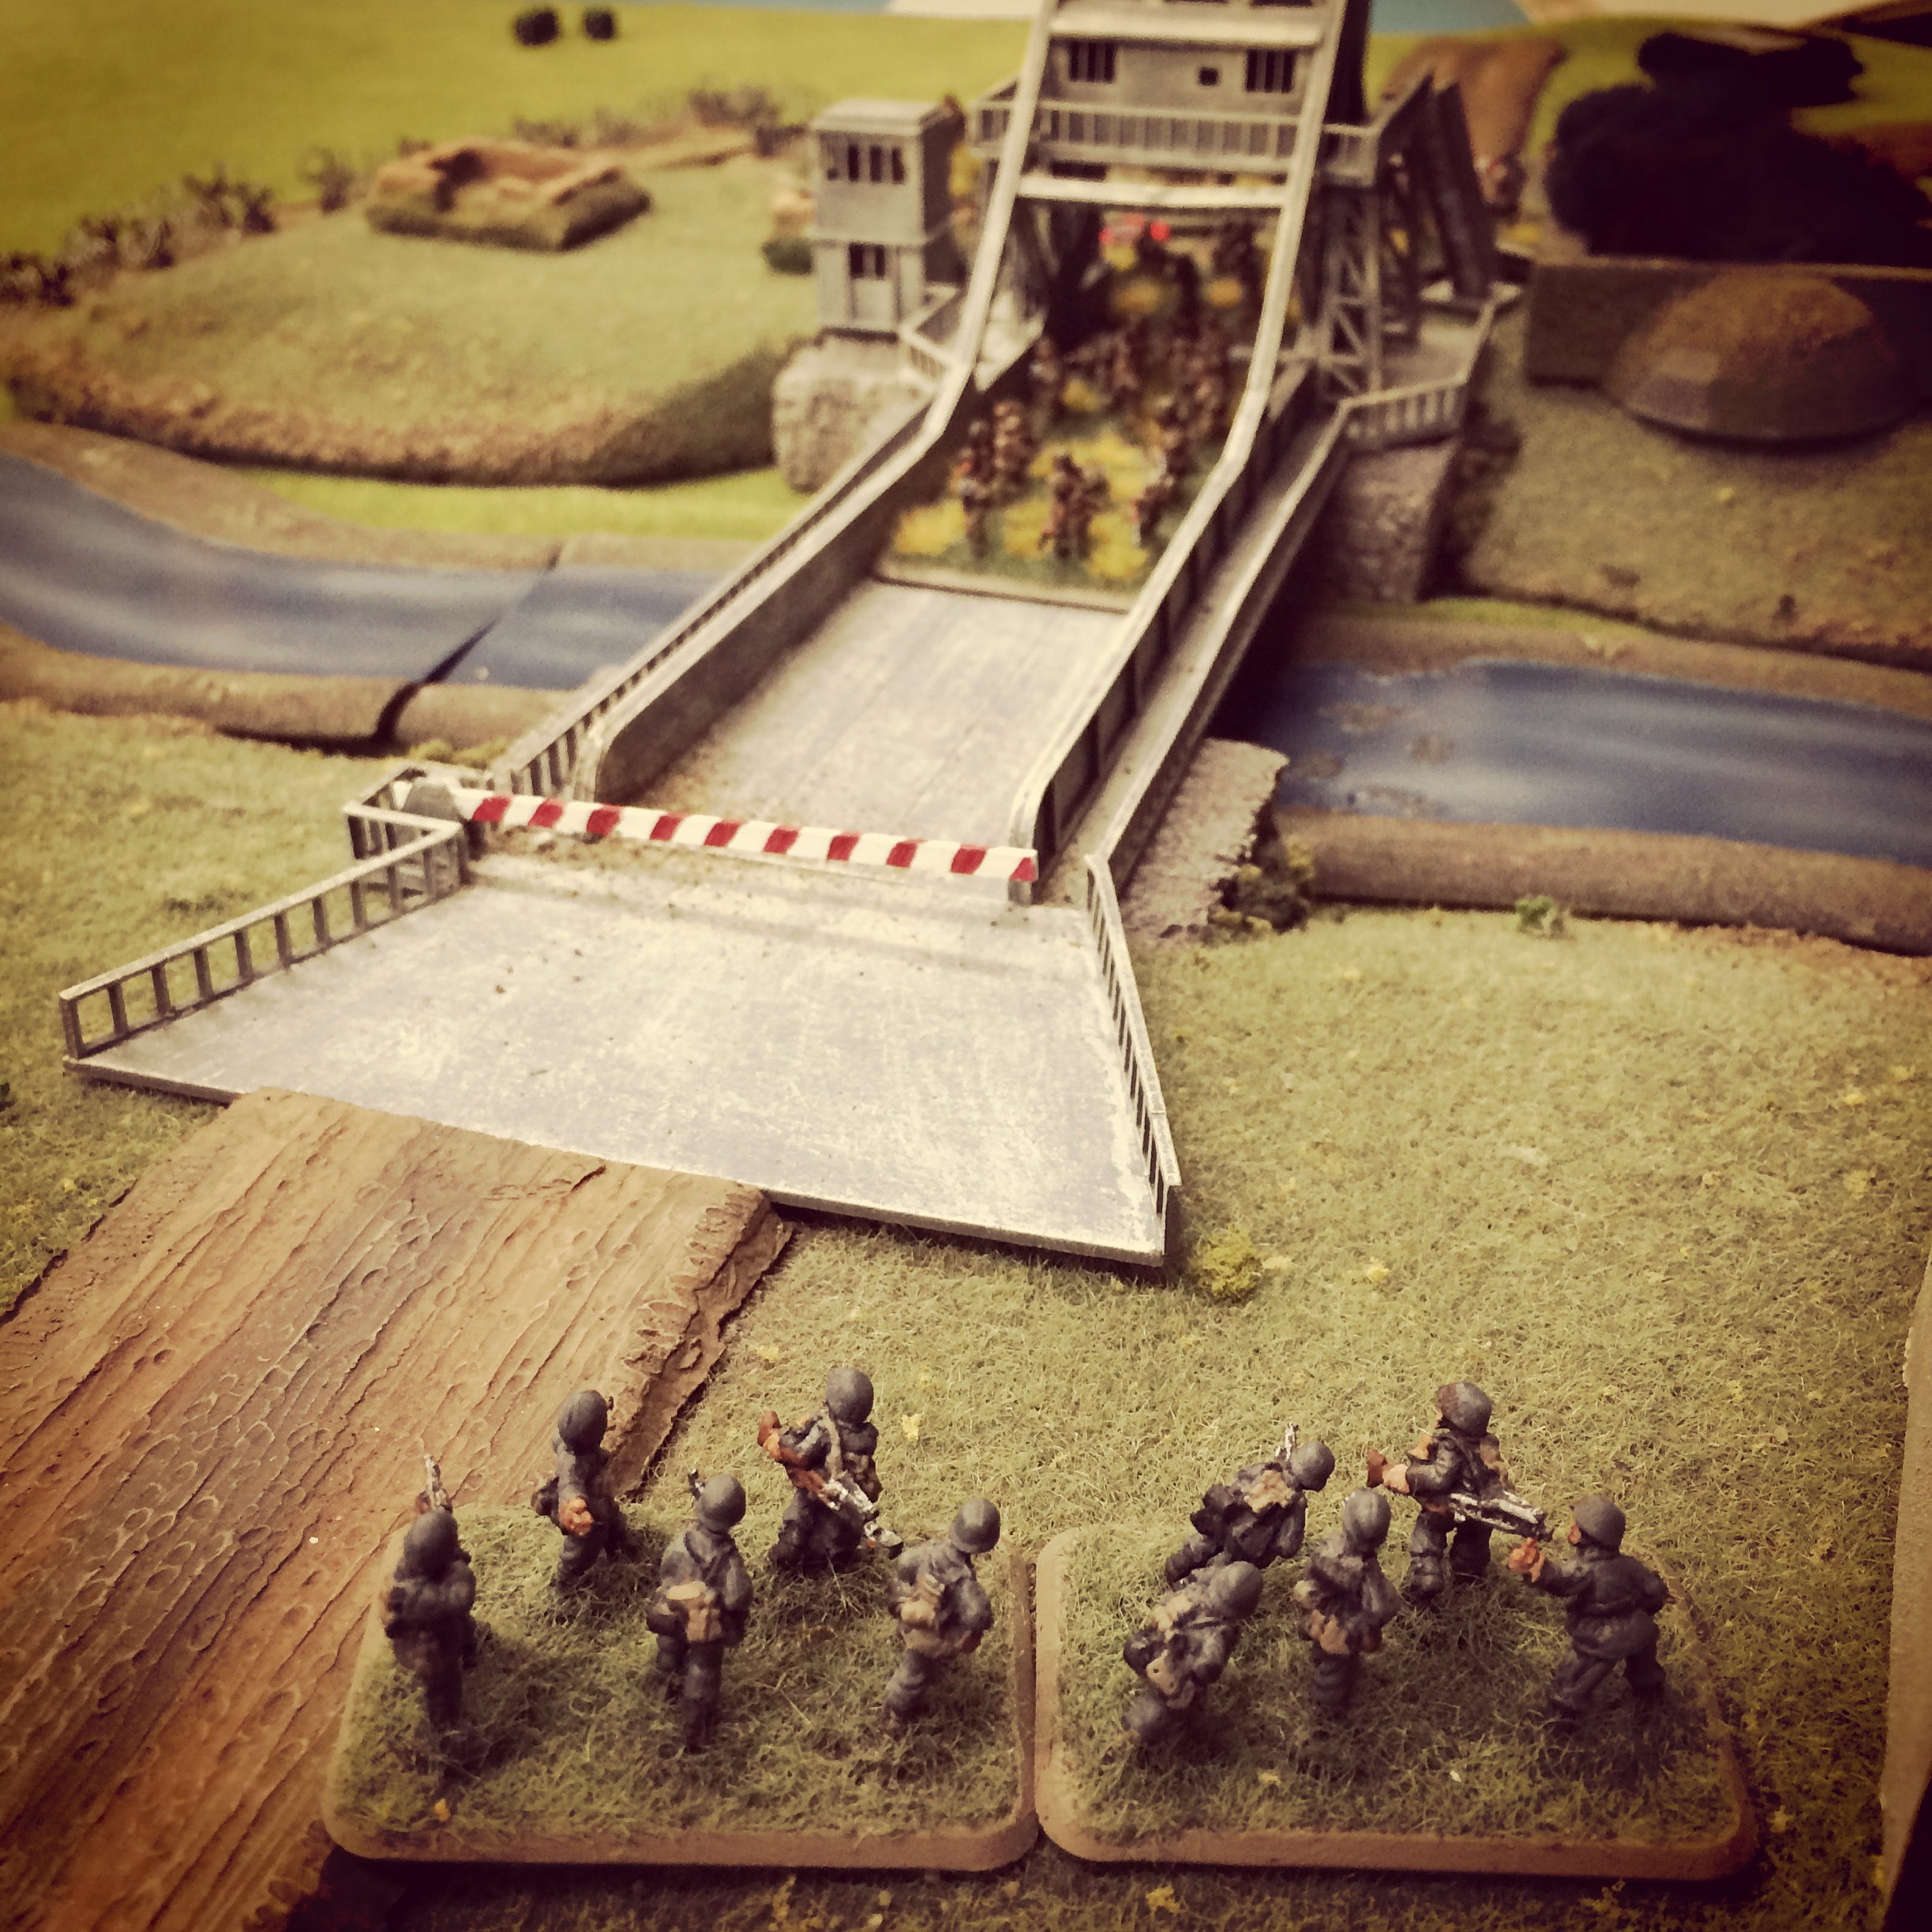 A thin line of Germans look to hold off the advancing British